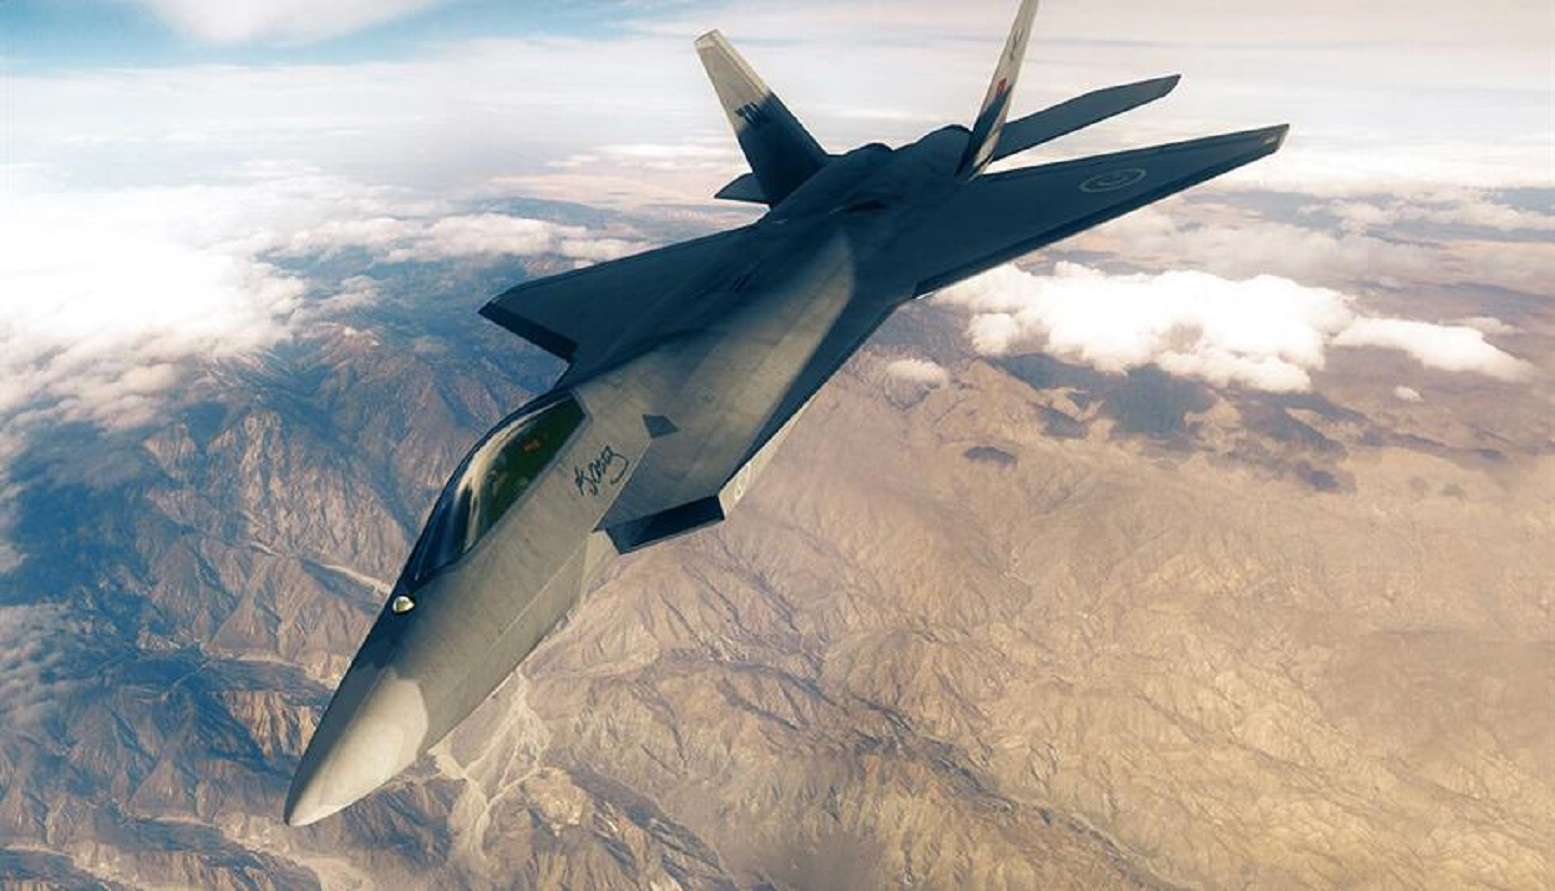 Turkey Wants to Build Its Own Version of the F-22 Stealth Fighter